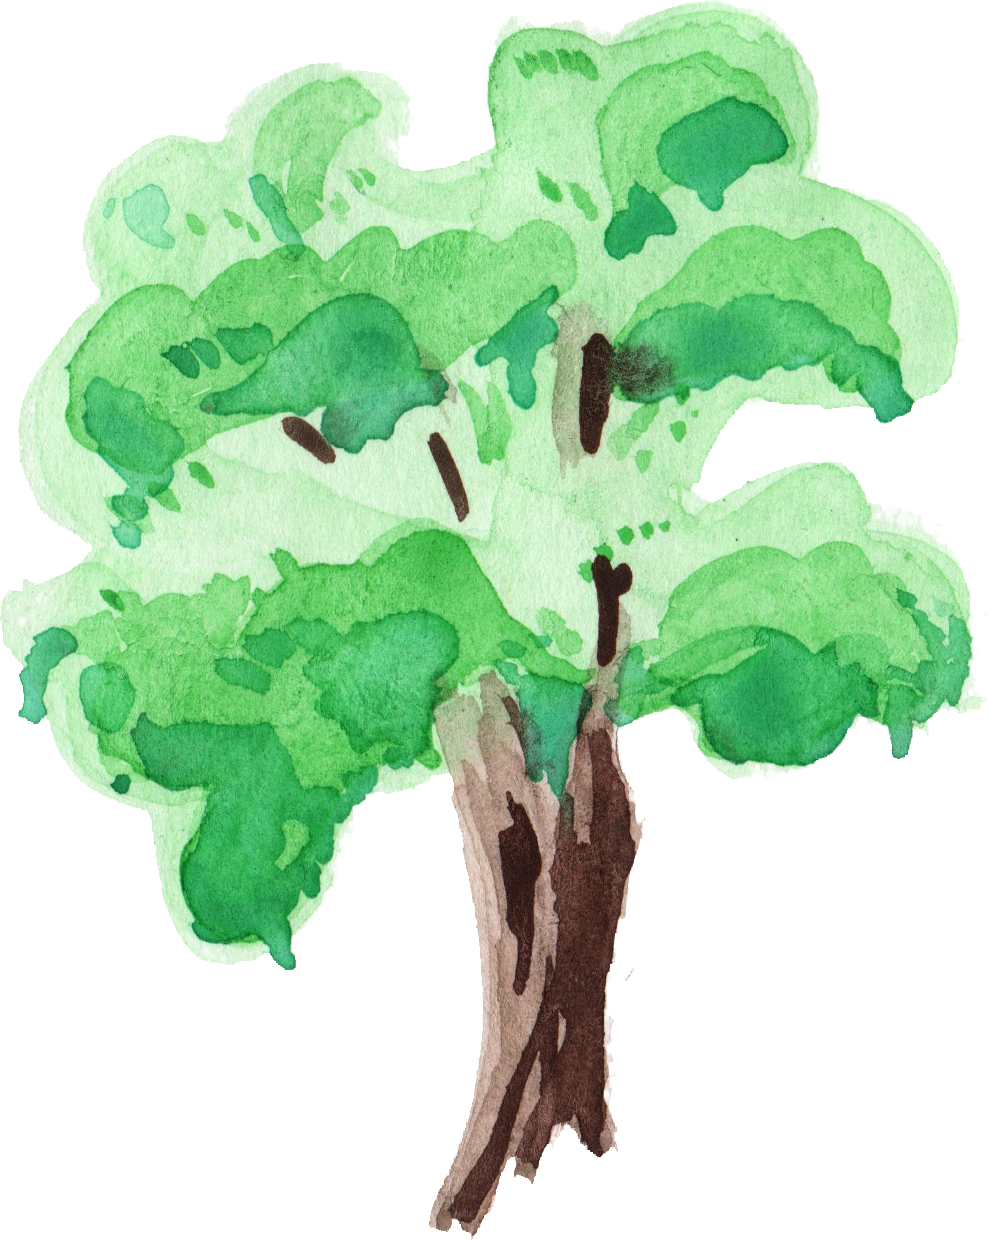 tree png transparent. Palm clipart watercolor